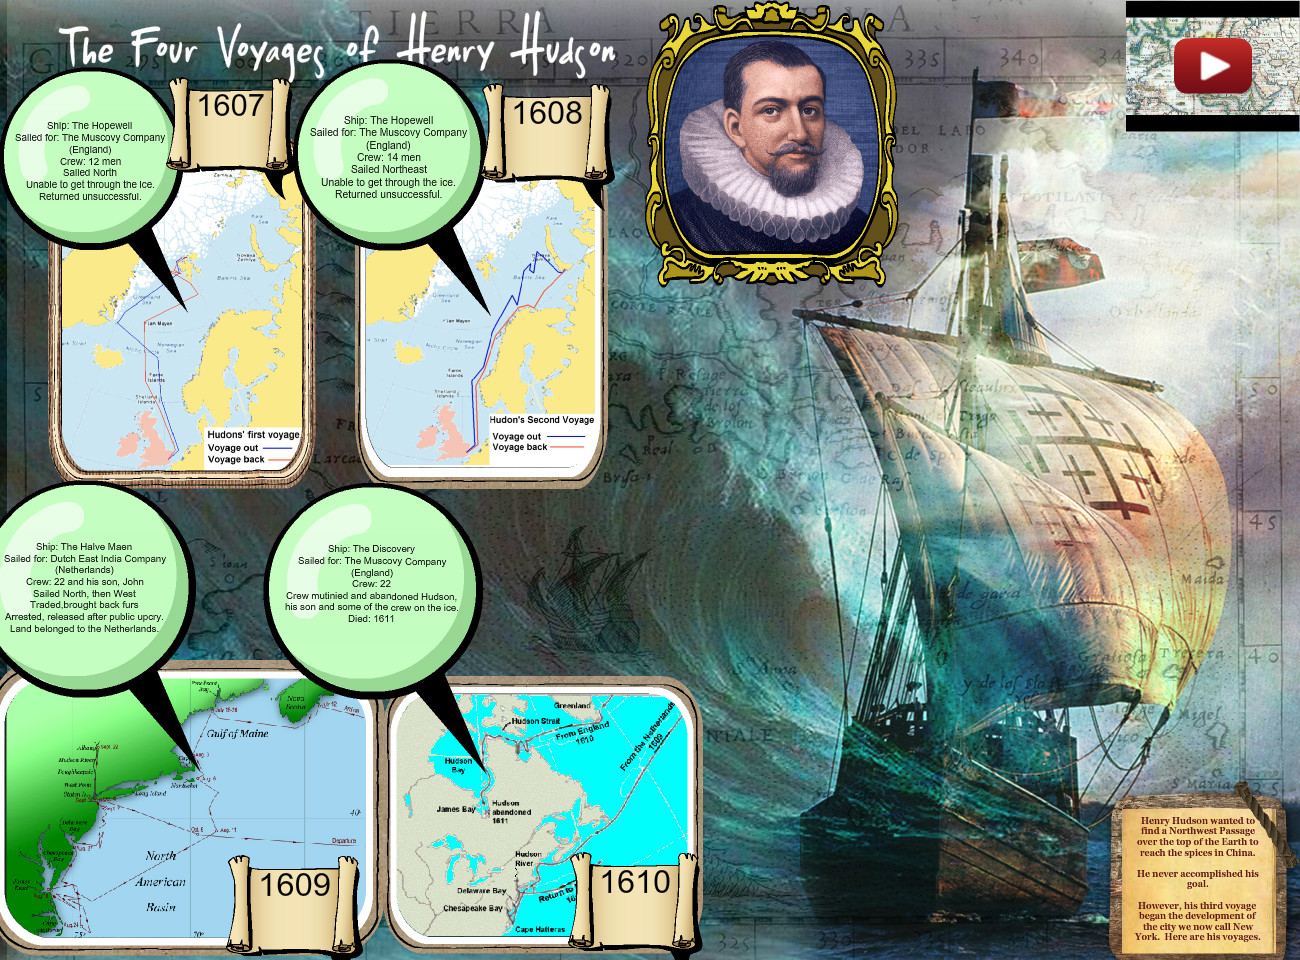 Four Voyages of Henry Hudson